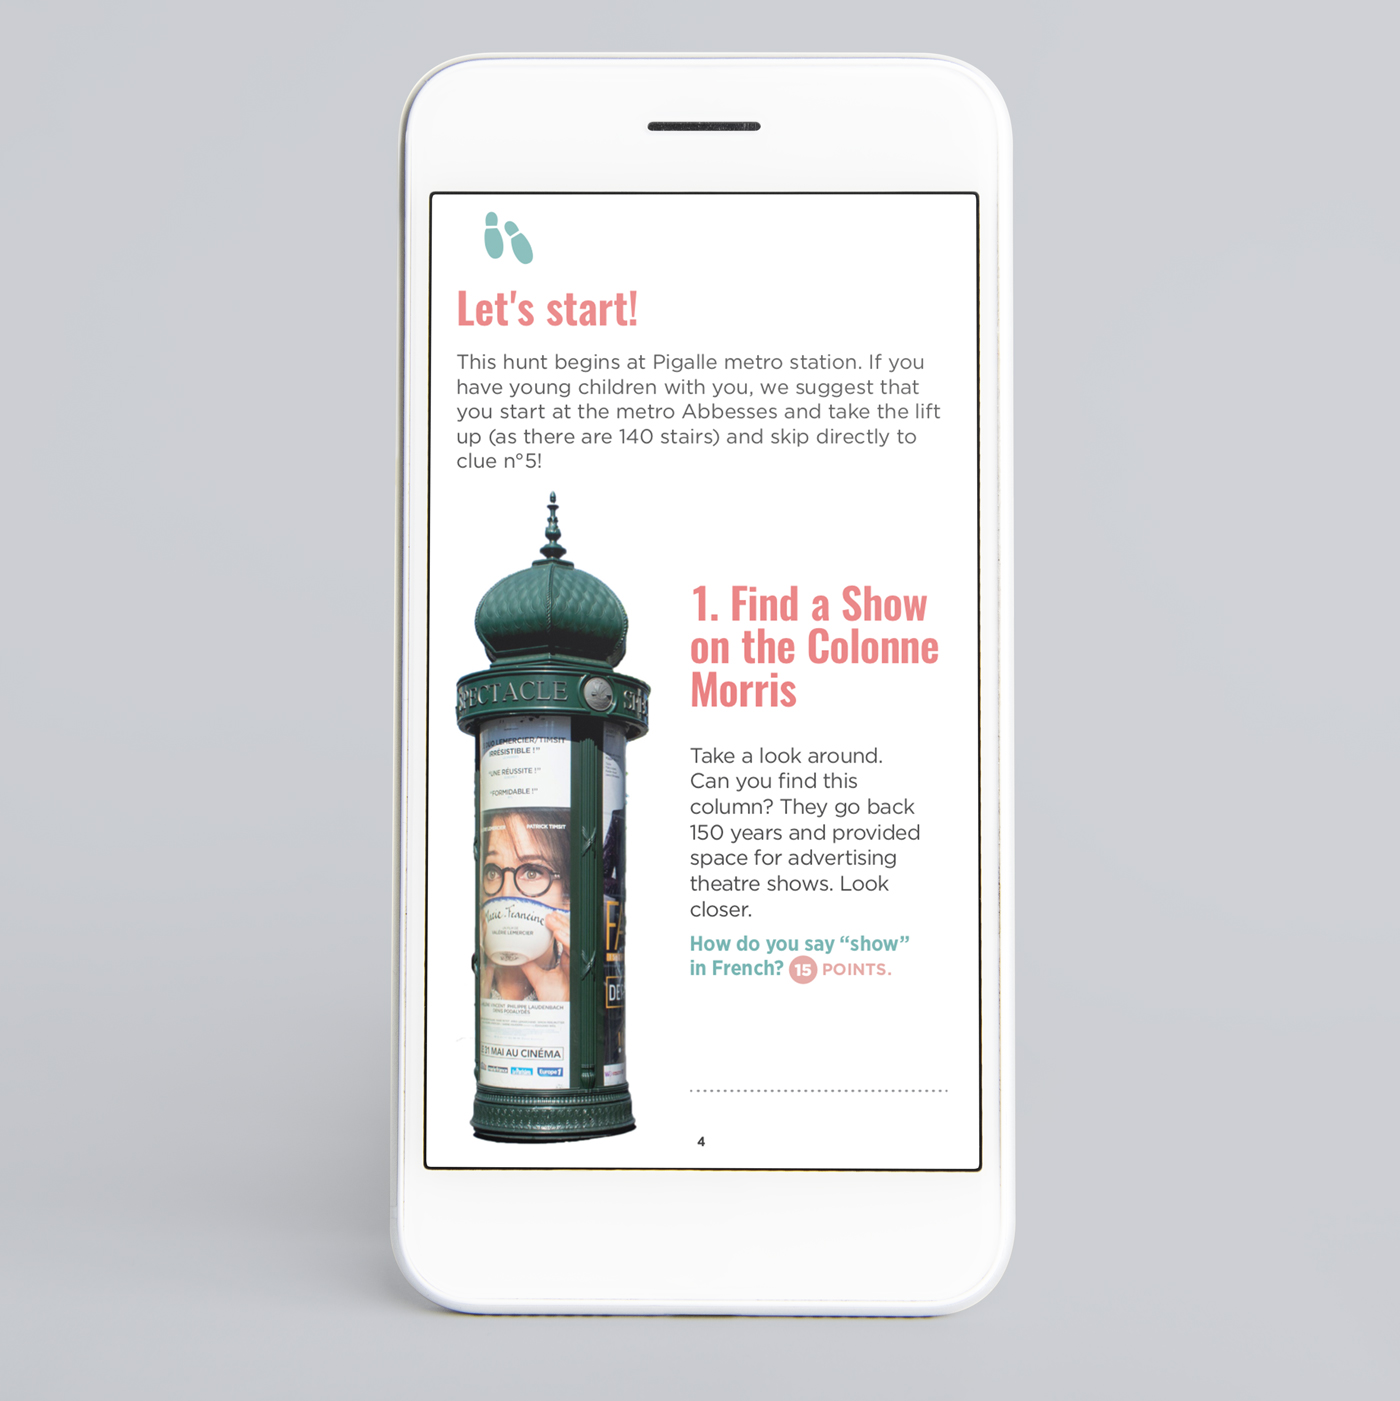 Sample page treasure hunt in Montmartre Paris smartphone version